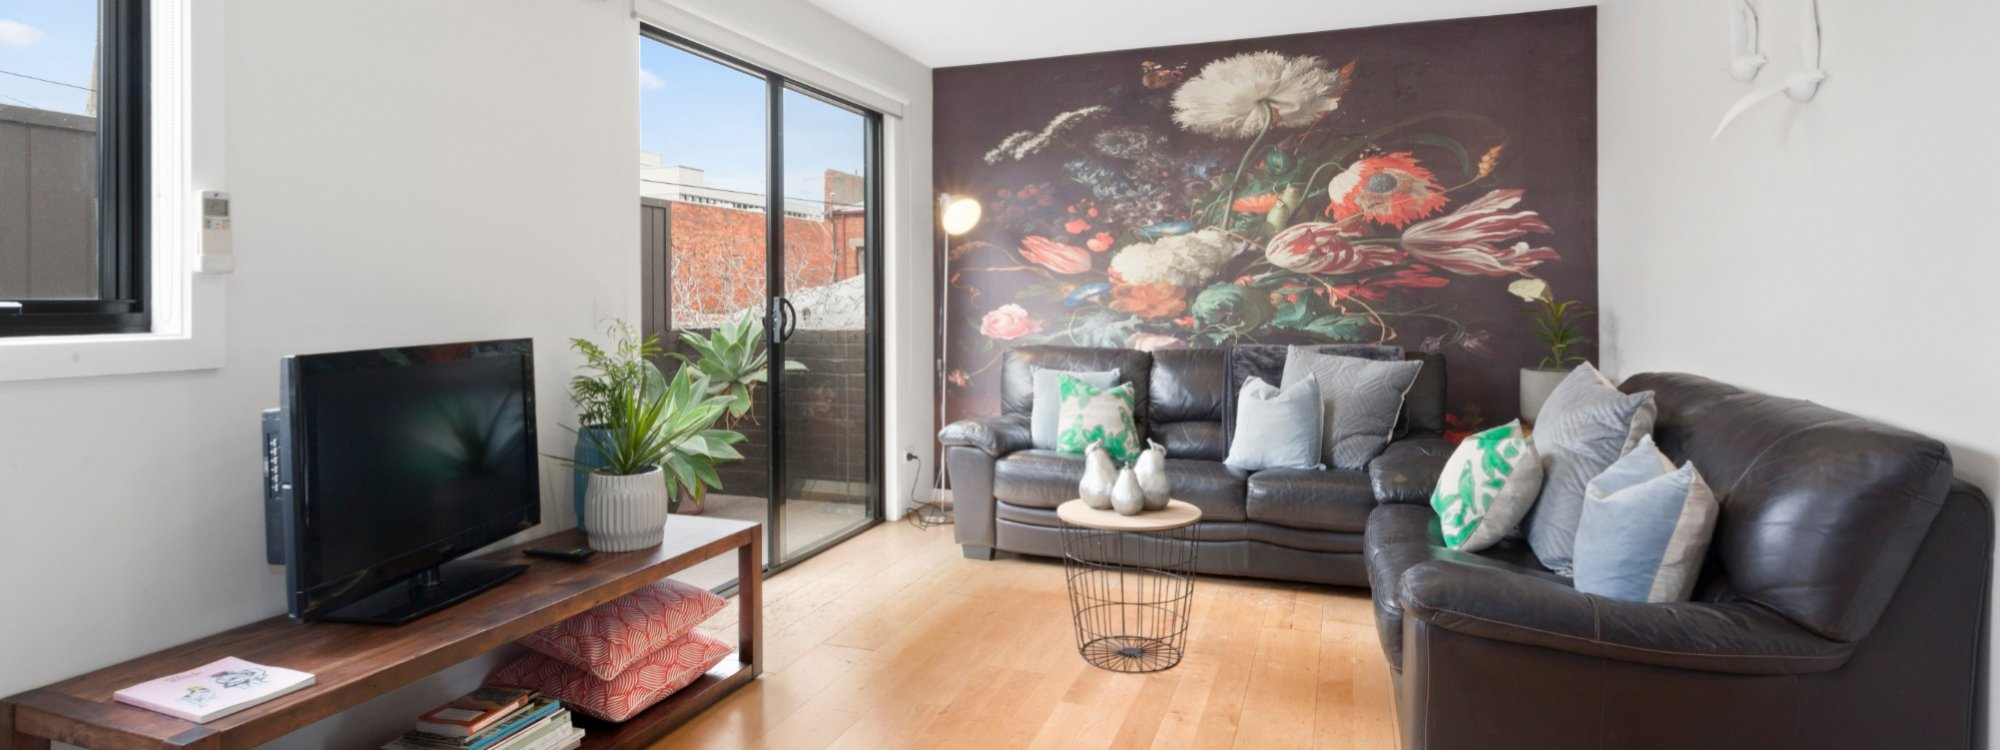 Manallack Apartments Whiteley - Melbourne - Living Area 1